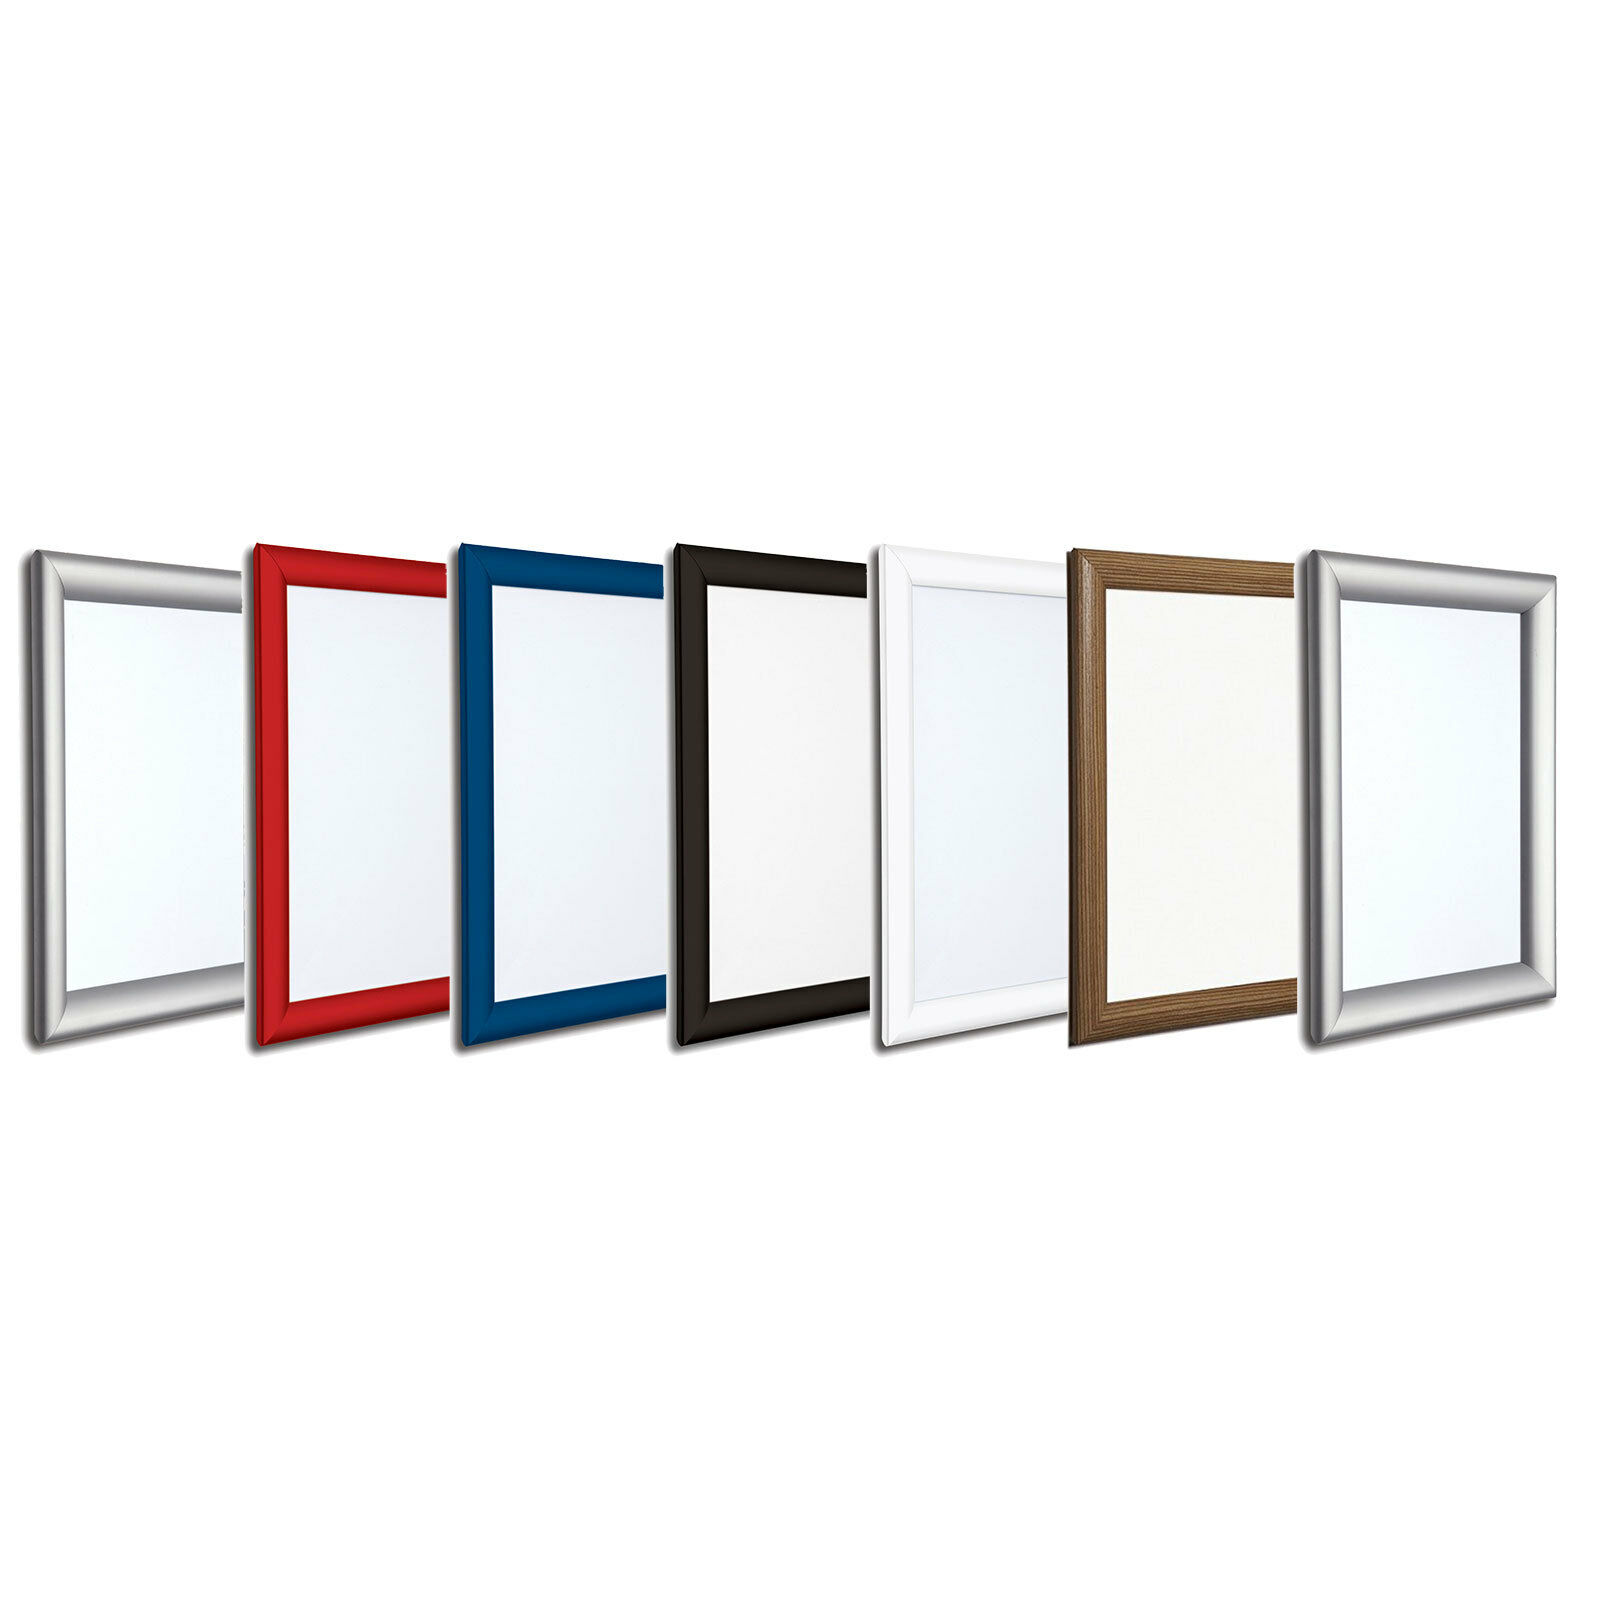 A5 A4 A3 A2 A1 A0 Snap Frames Poster Holders Displays Retail Wall Notice Boards